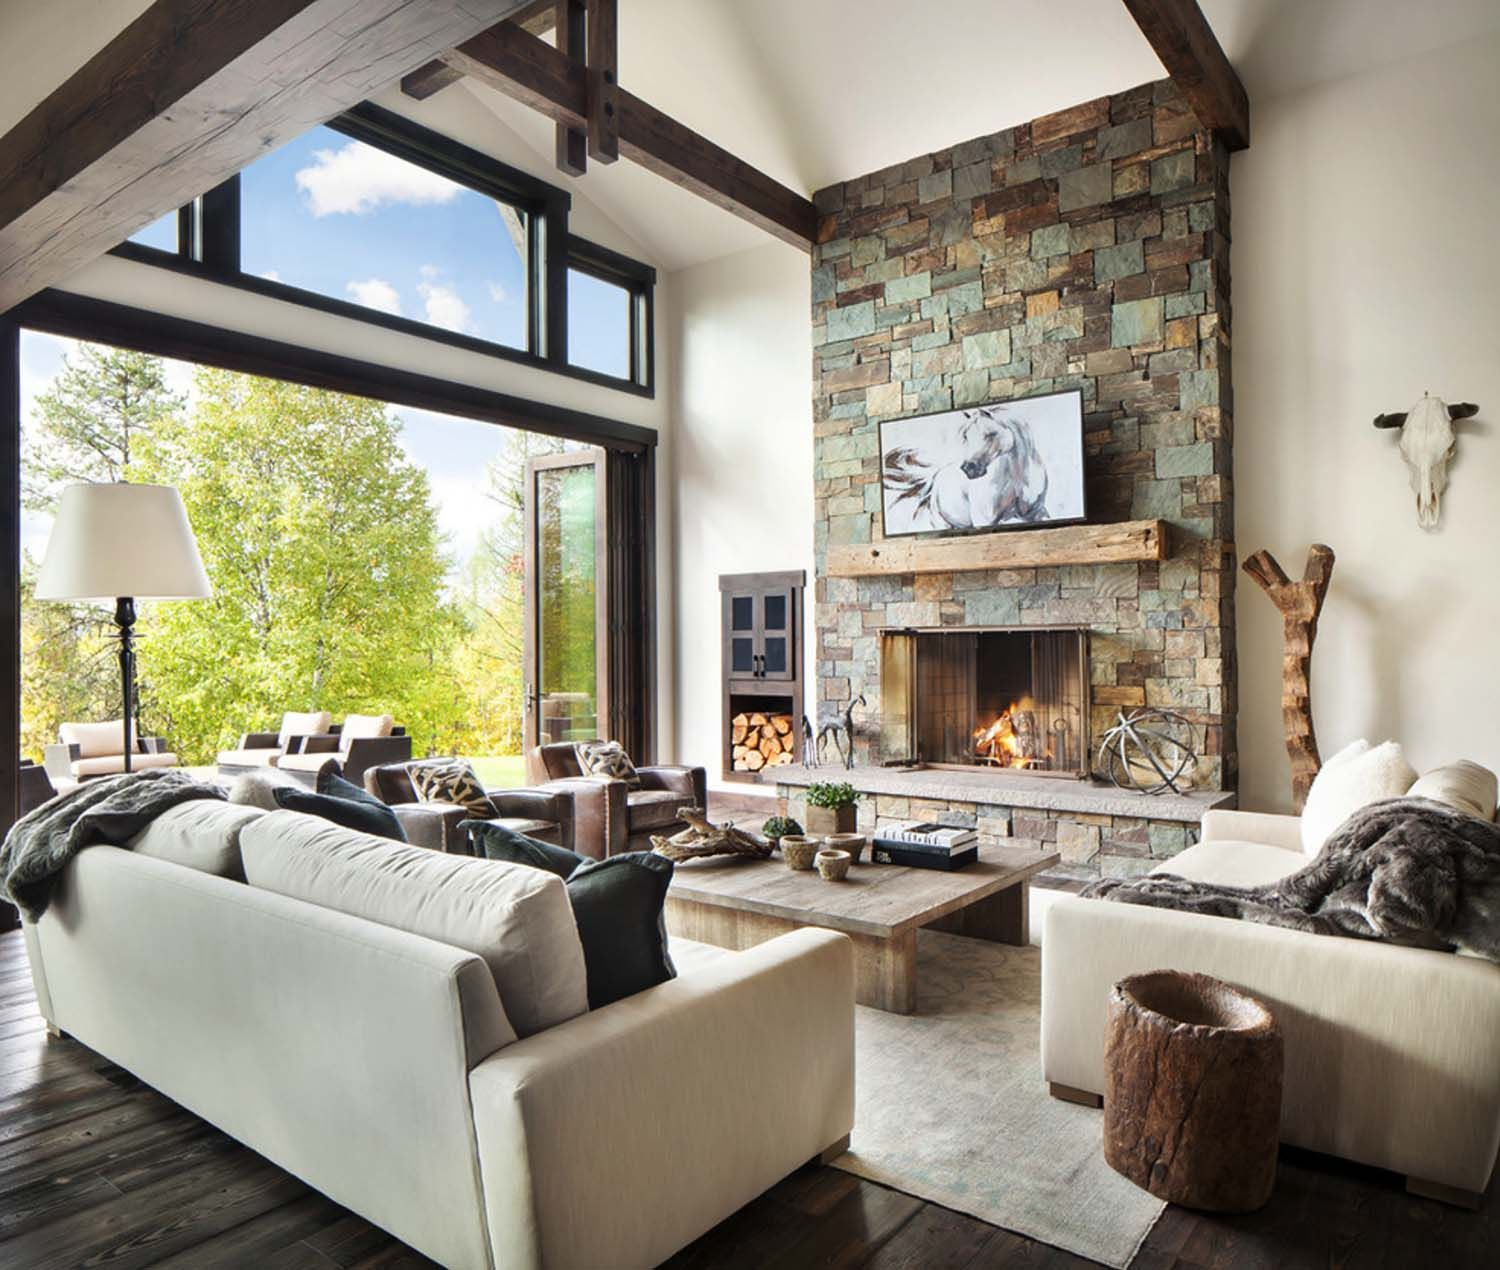 Inside Home Design Ideas: Rustic-modern Dwelling Nestled In The Northern Rocky